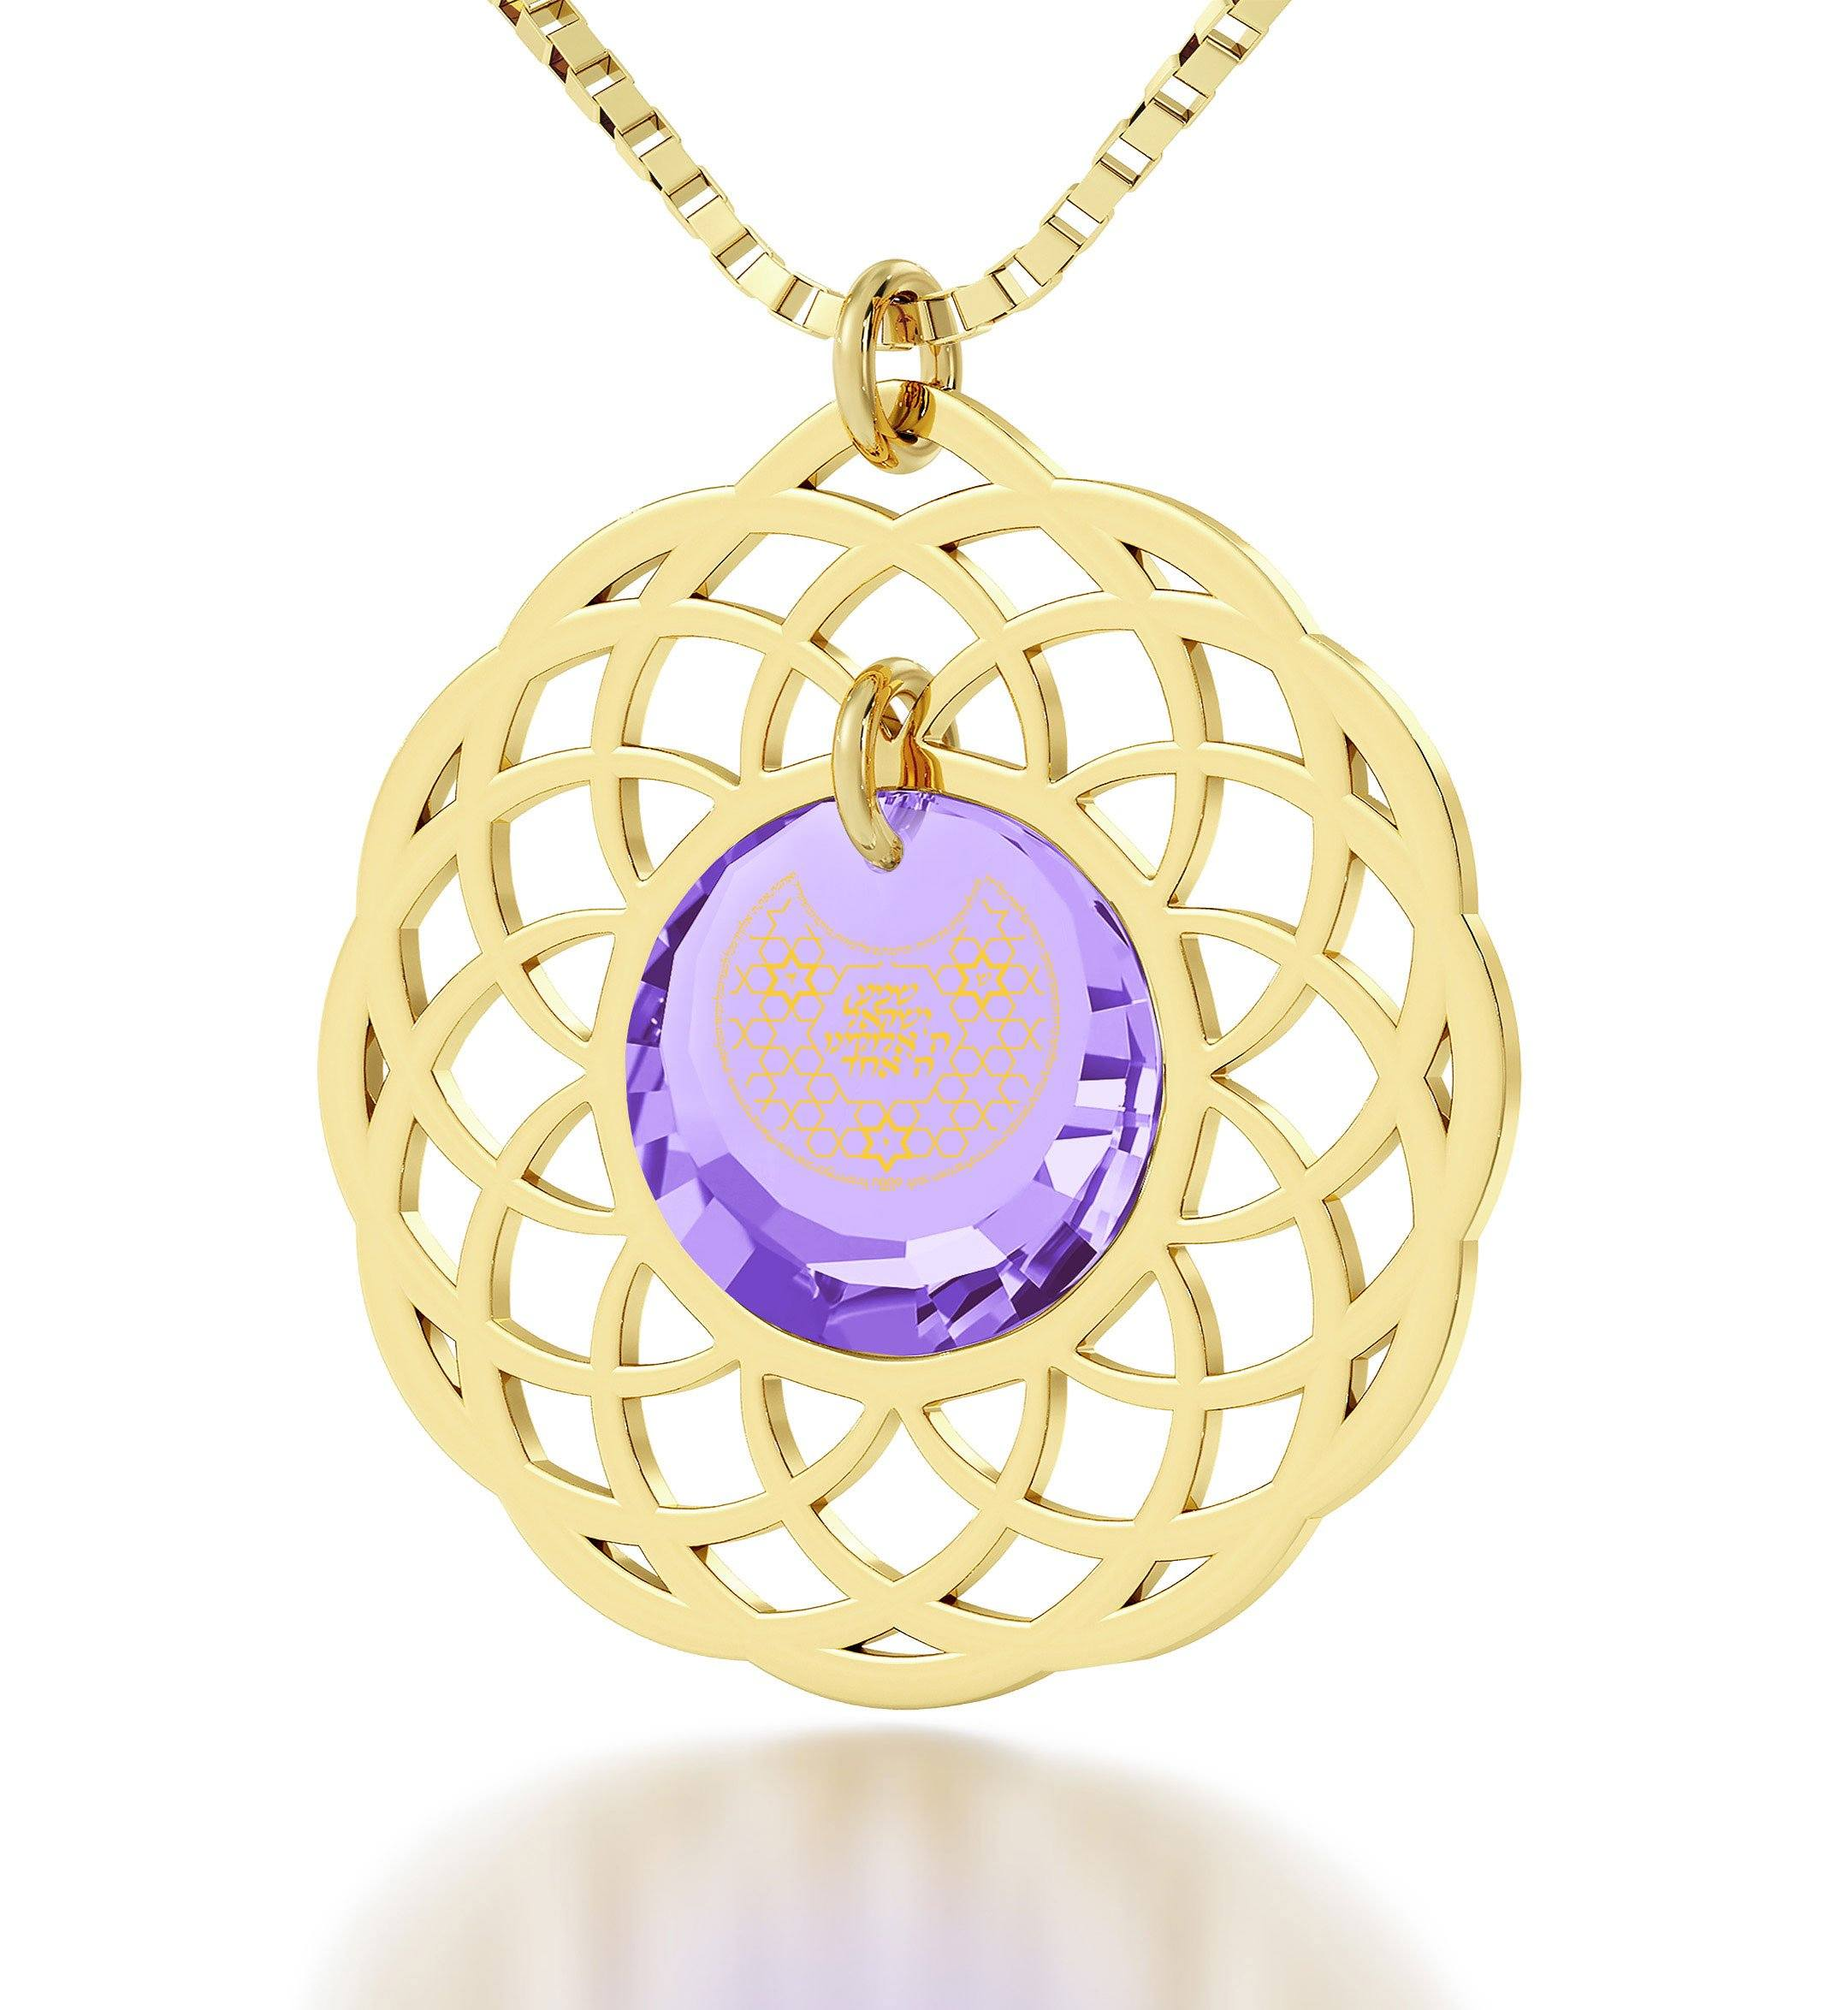 "Mandala Necklace with ""Shema Yisrael"" Engraved in 24k, Jewelry from Israel with Swarovski Purple Stone, Israel Gifts"